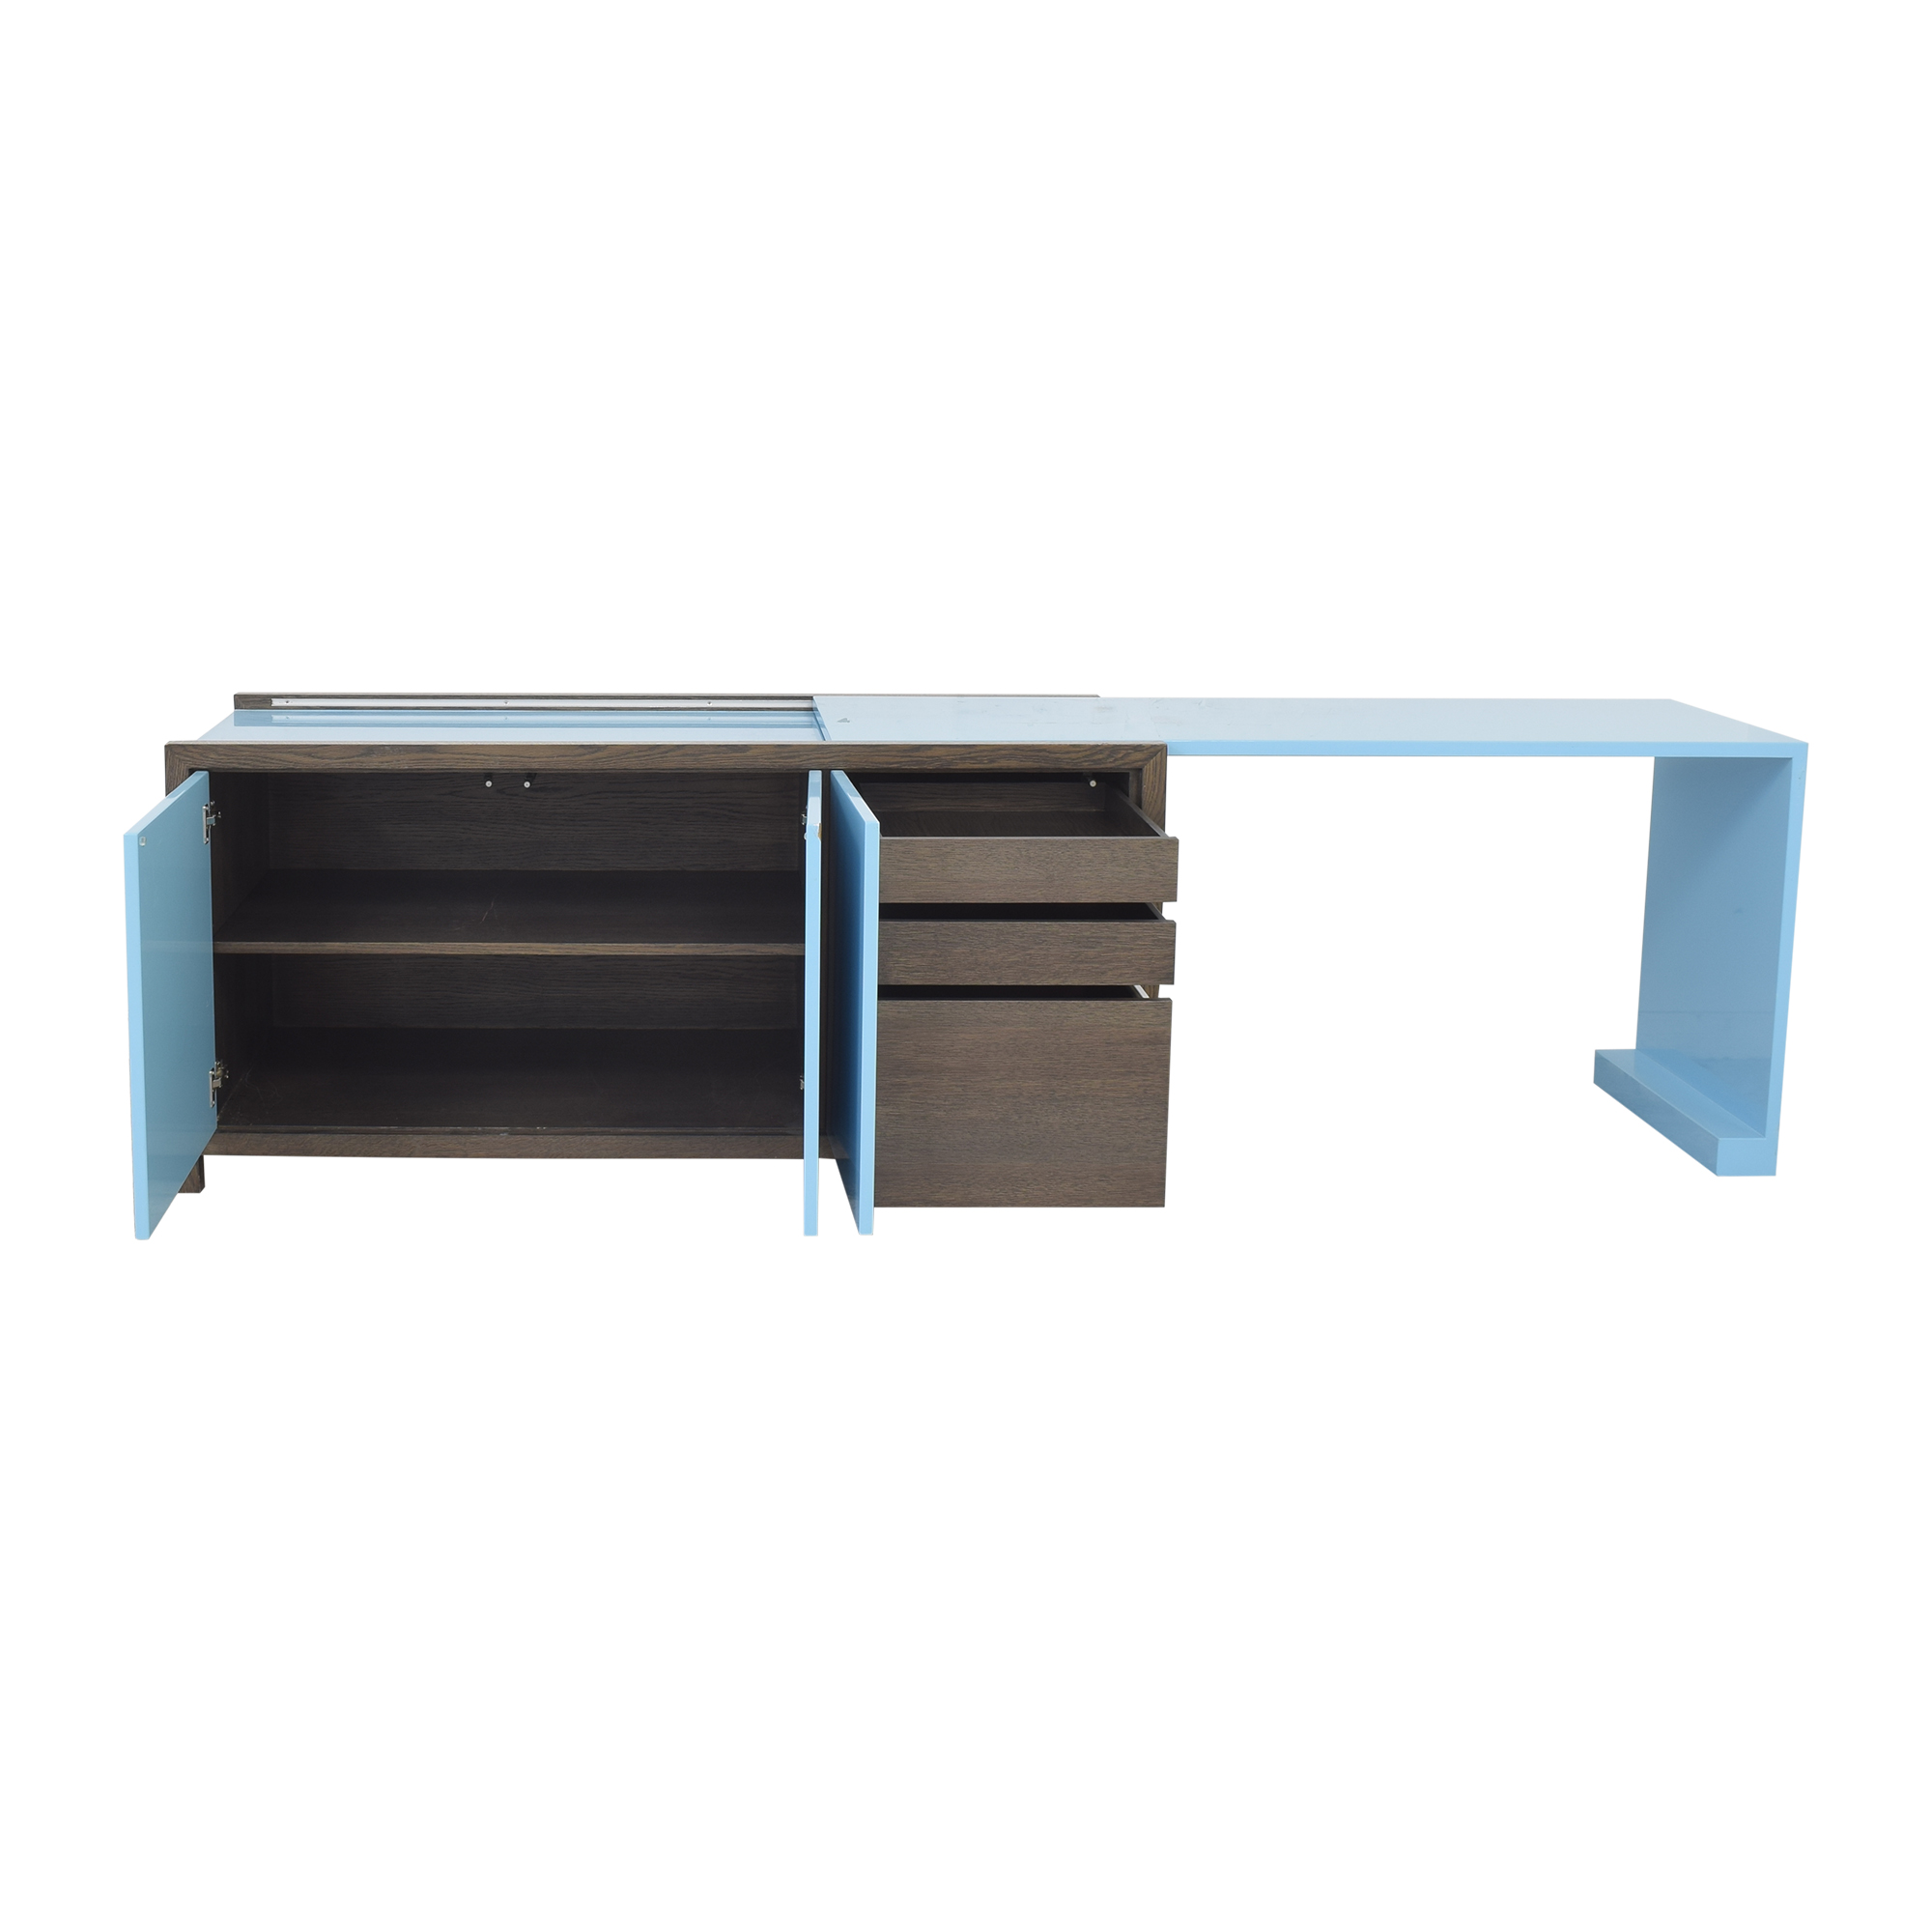 Dune Dune Lemans Sideboard with Extendable Desk second hand